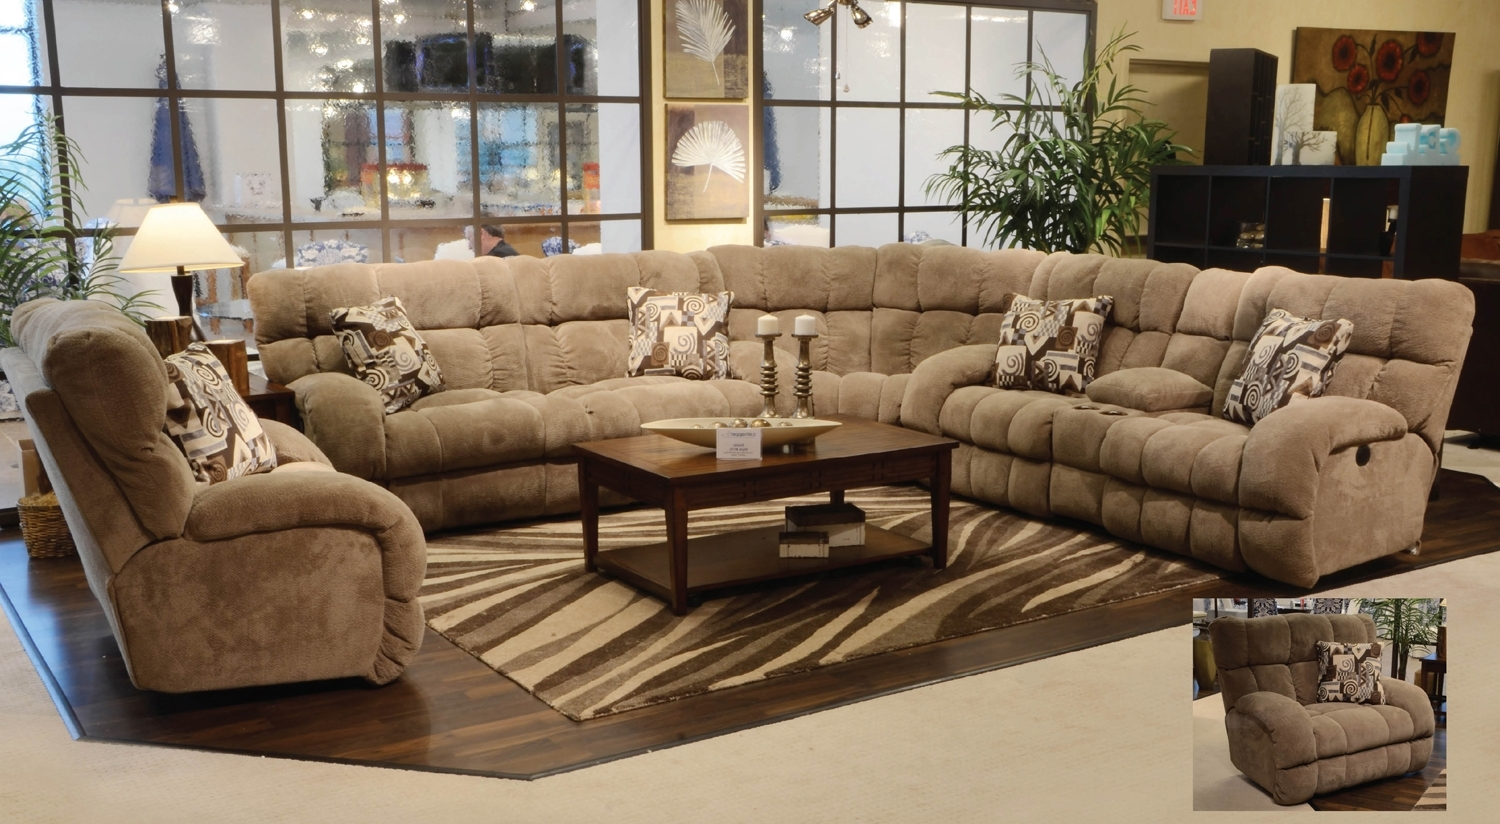 110X110 Sectional Sofas Intended For Newest Furniture : Sectional Sofa 110 X 110 Corner Couch Ideas Sectional (View 2 of 20)